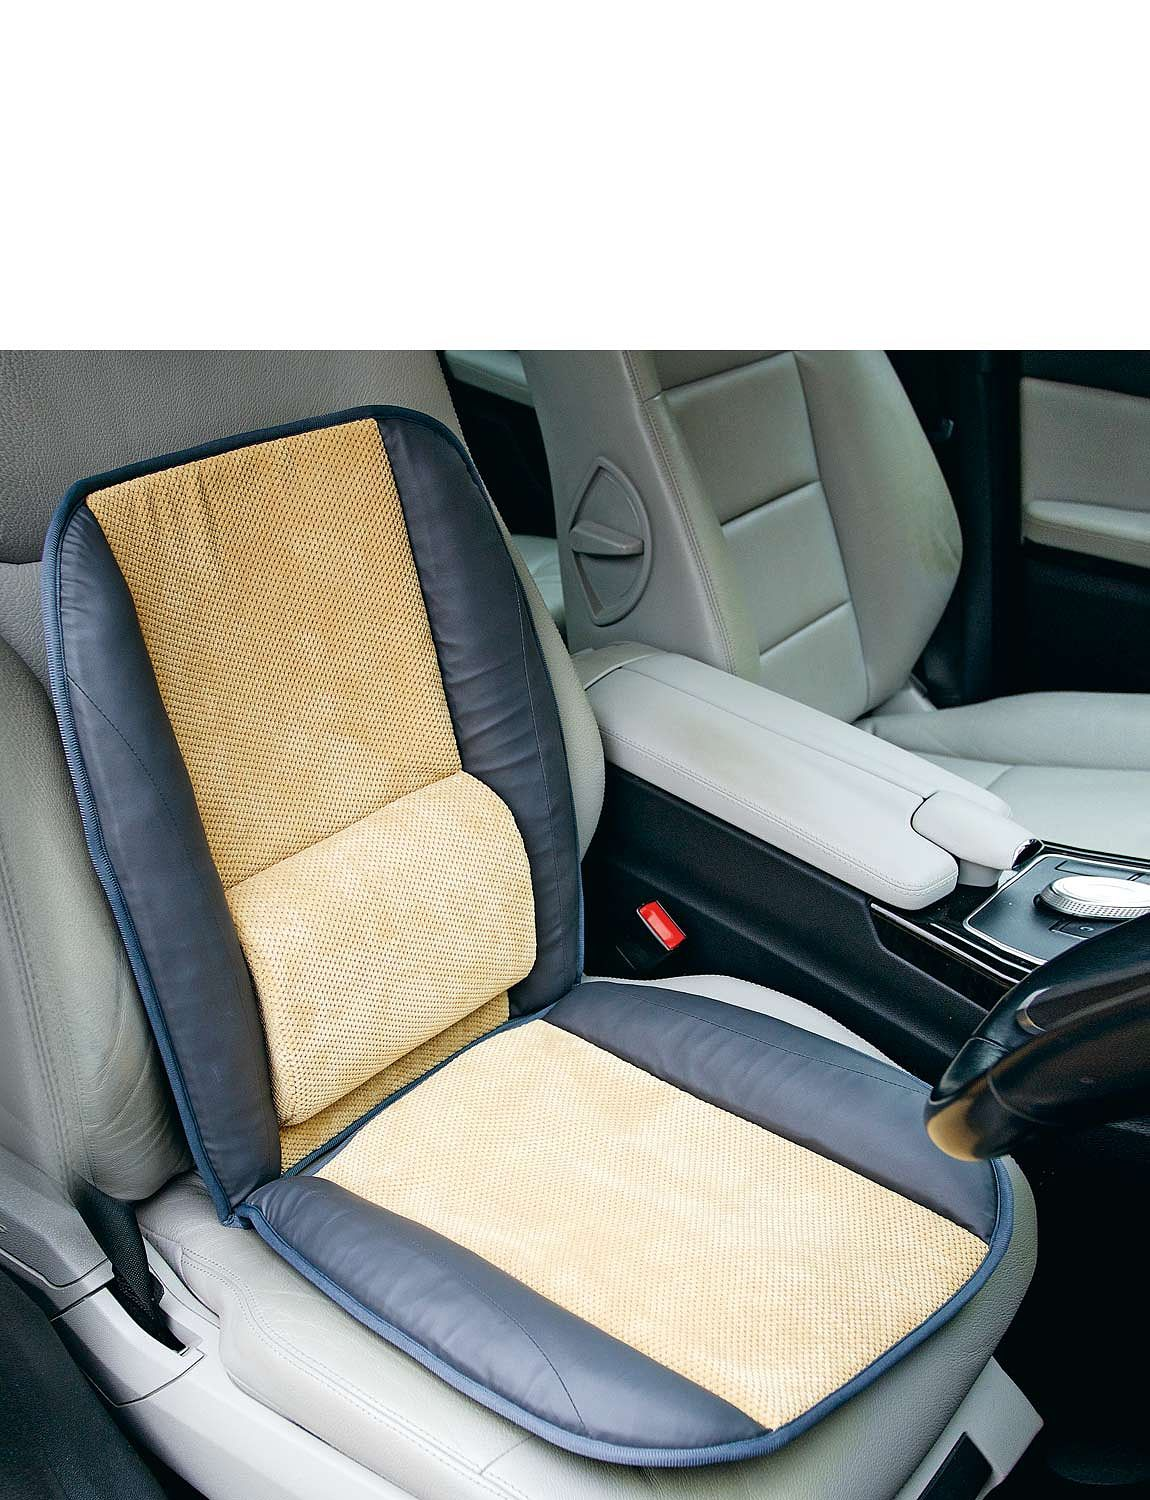 memory foam sports car seat cushion chums. Black Bedroom Furniture Sets. Home Design Ideas